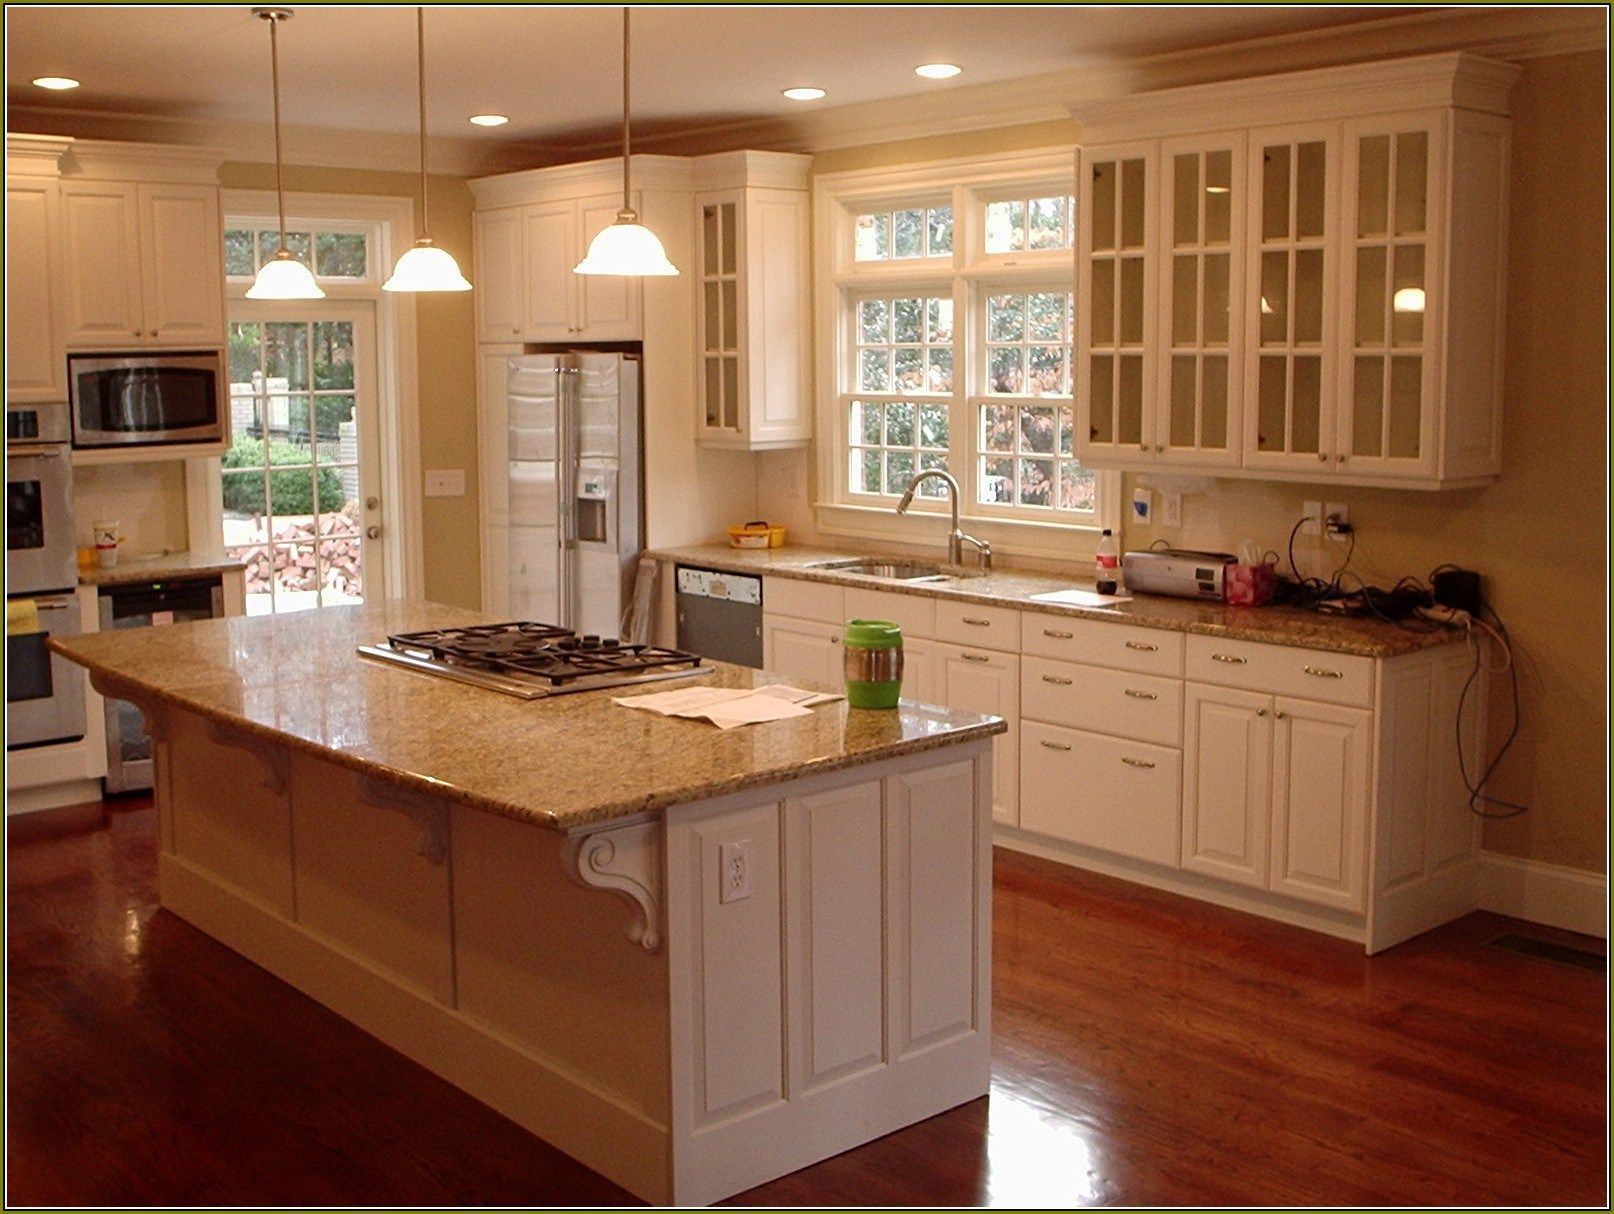 Home Depot Kitchen Cabinets Home Design Ideas Refacing Refinishing Unique Kitchen Cabinets Home Depot Inspiration